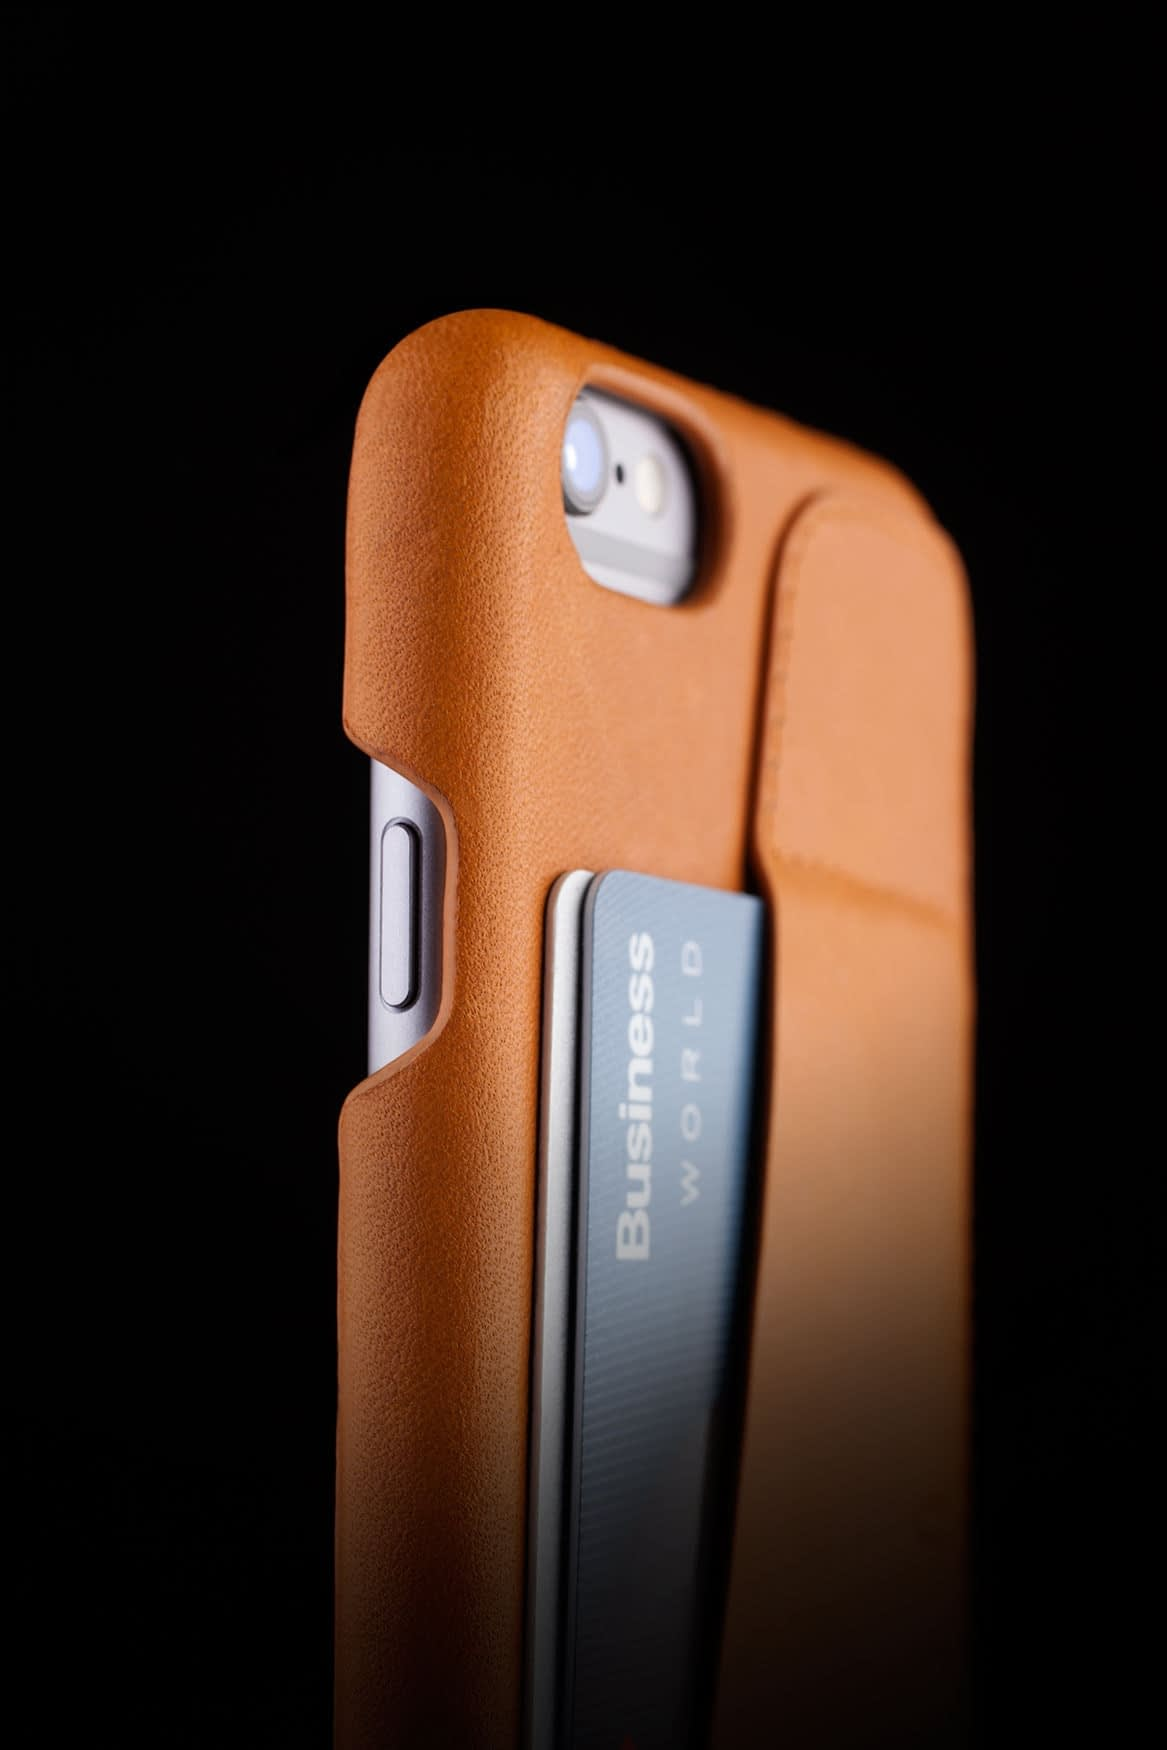 Leather Wallet Case 80° for iPhone 6 Tan Lifestyle 003